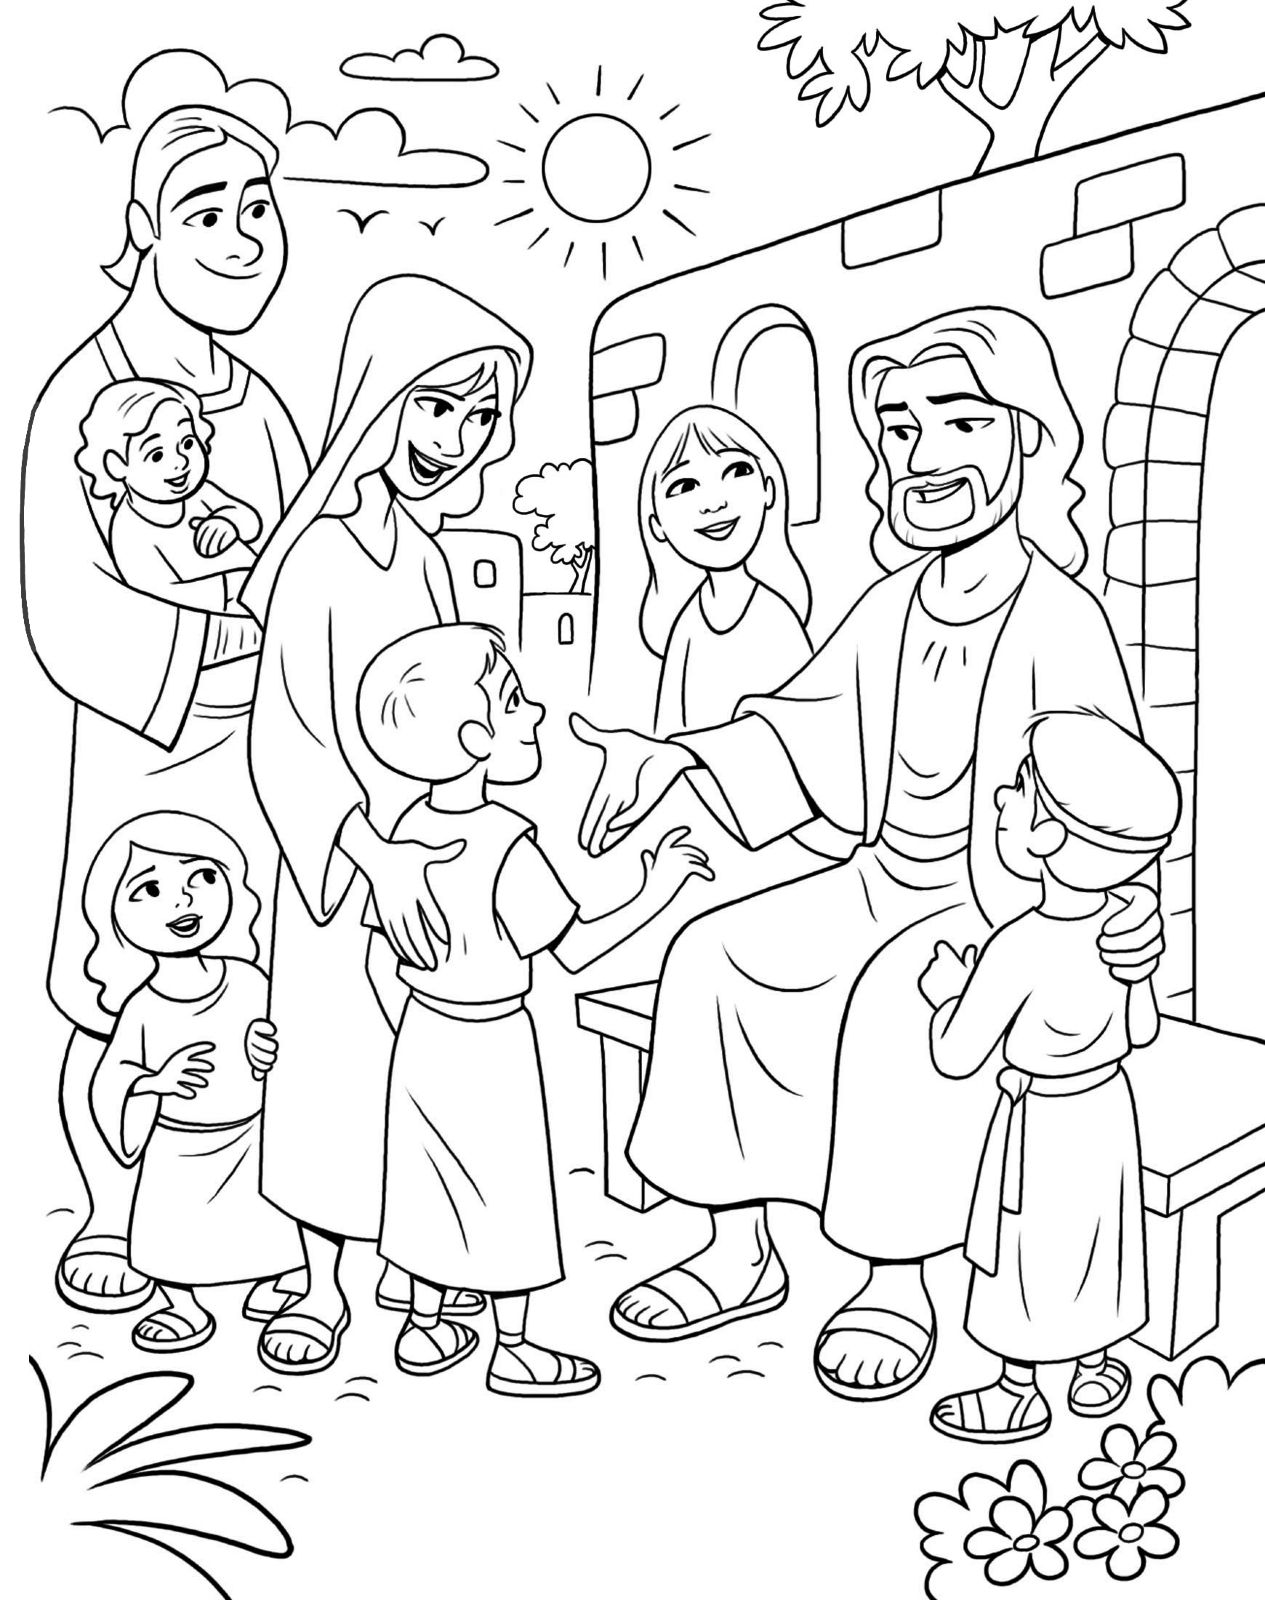 Bluebonkers Boy Coloring Pages Sharing Free Printable Kids Coloring Sheets For Boy Coloring Pages For Boys Cartoon Coloring Pages Vintage Coloring Books